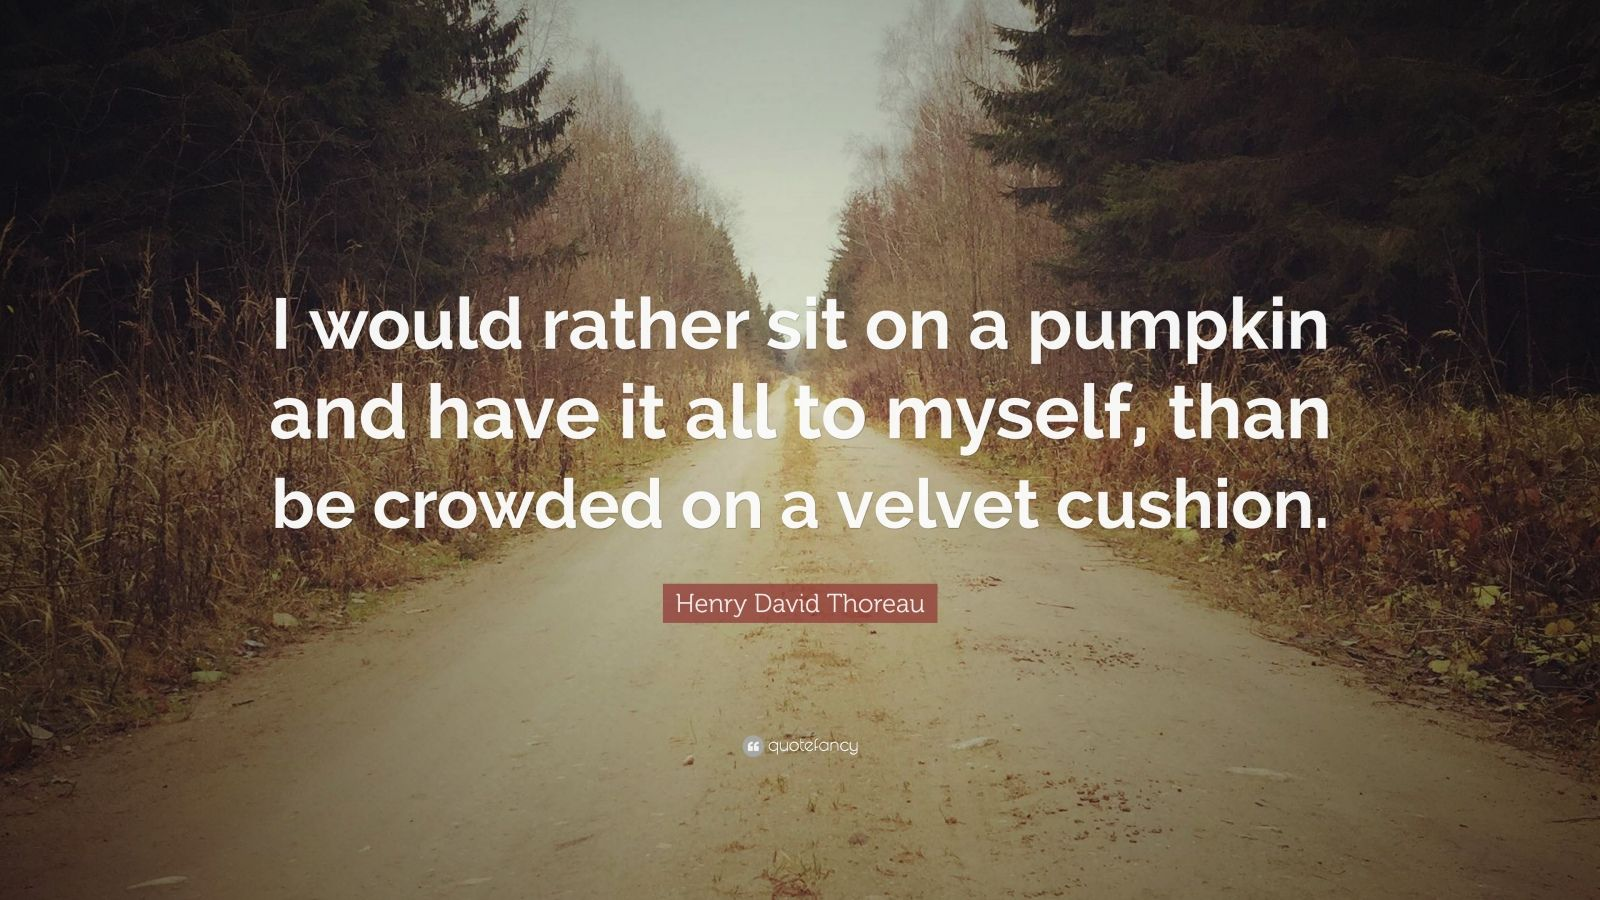 """Henry David Thoreau Quote: """"I would rather sit on a pumpkin and have it all to myself, than be crowded on a velvet cushion."""""""